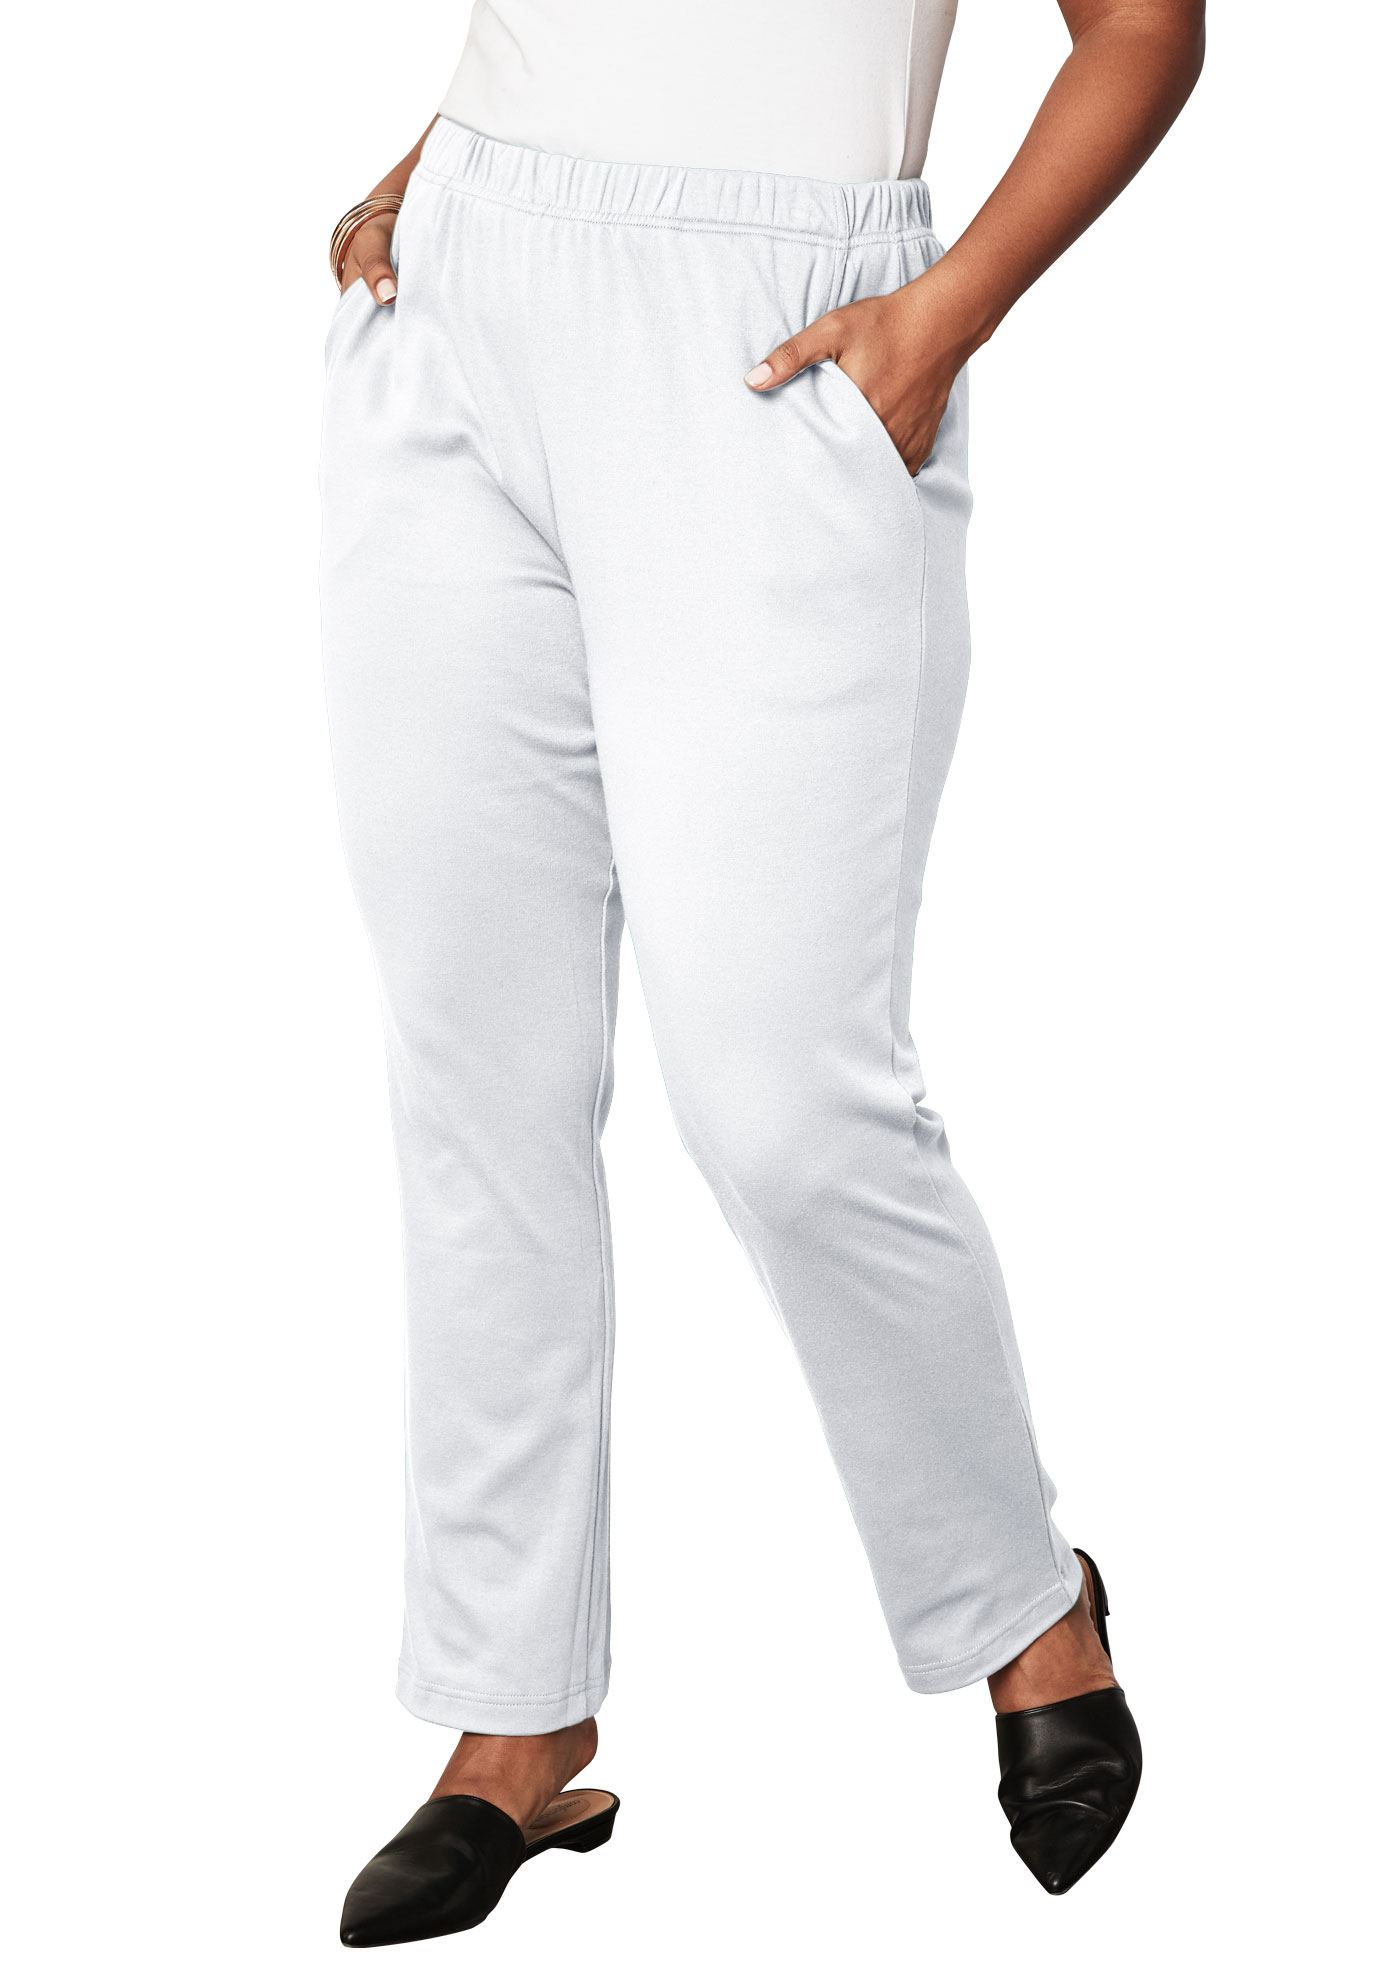 Roaman's Plus Size Tall Soft Knit Straight-leg Pants